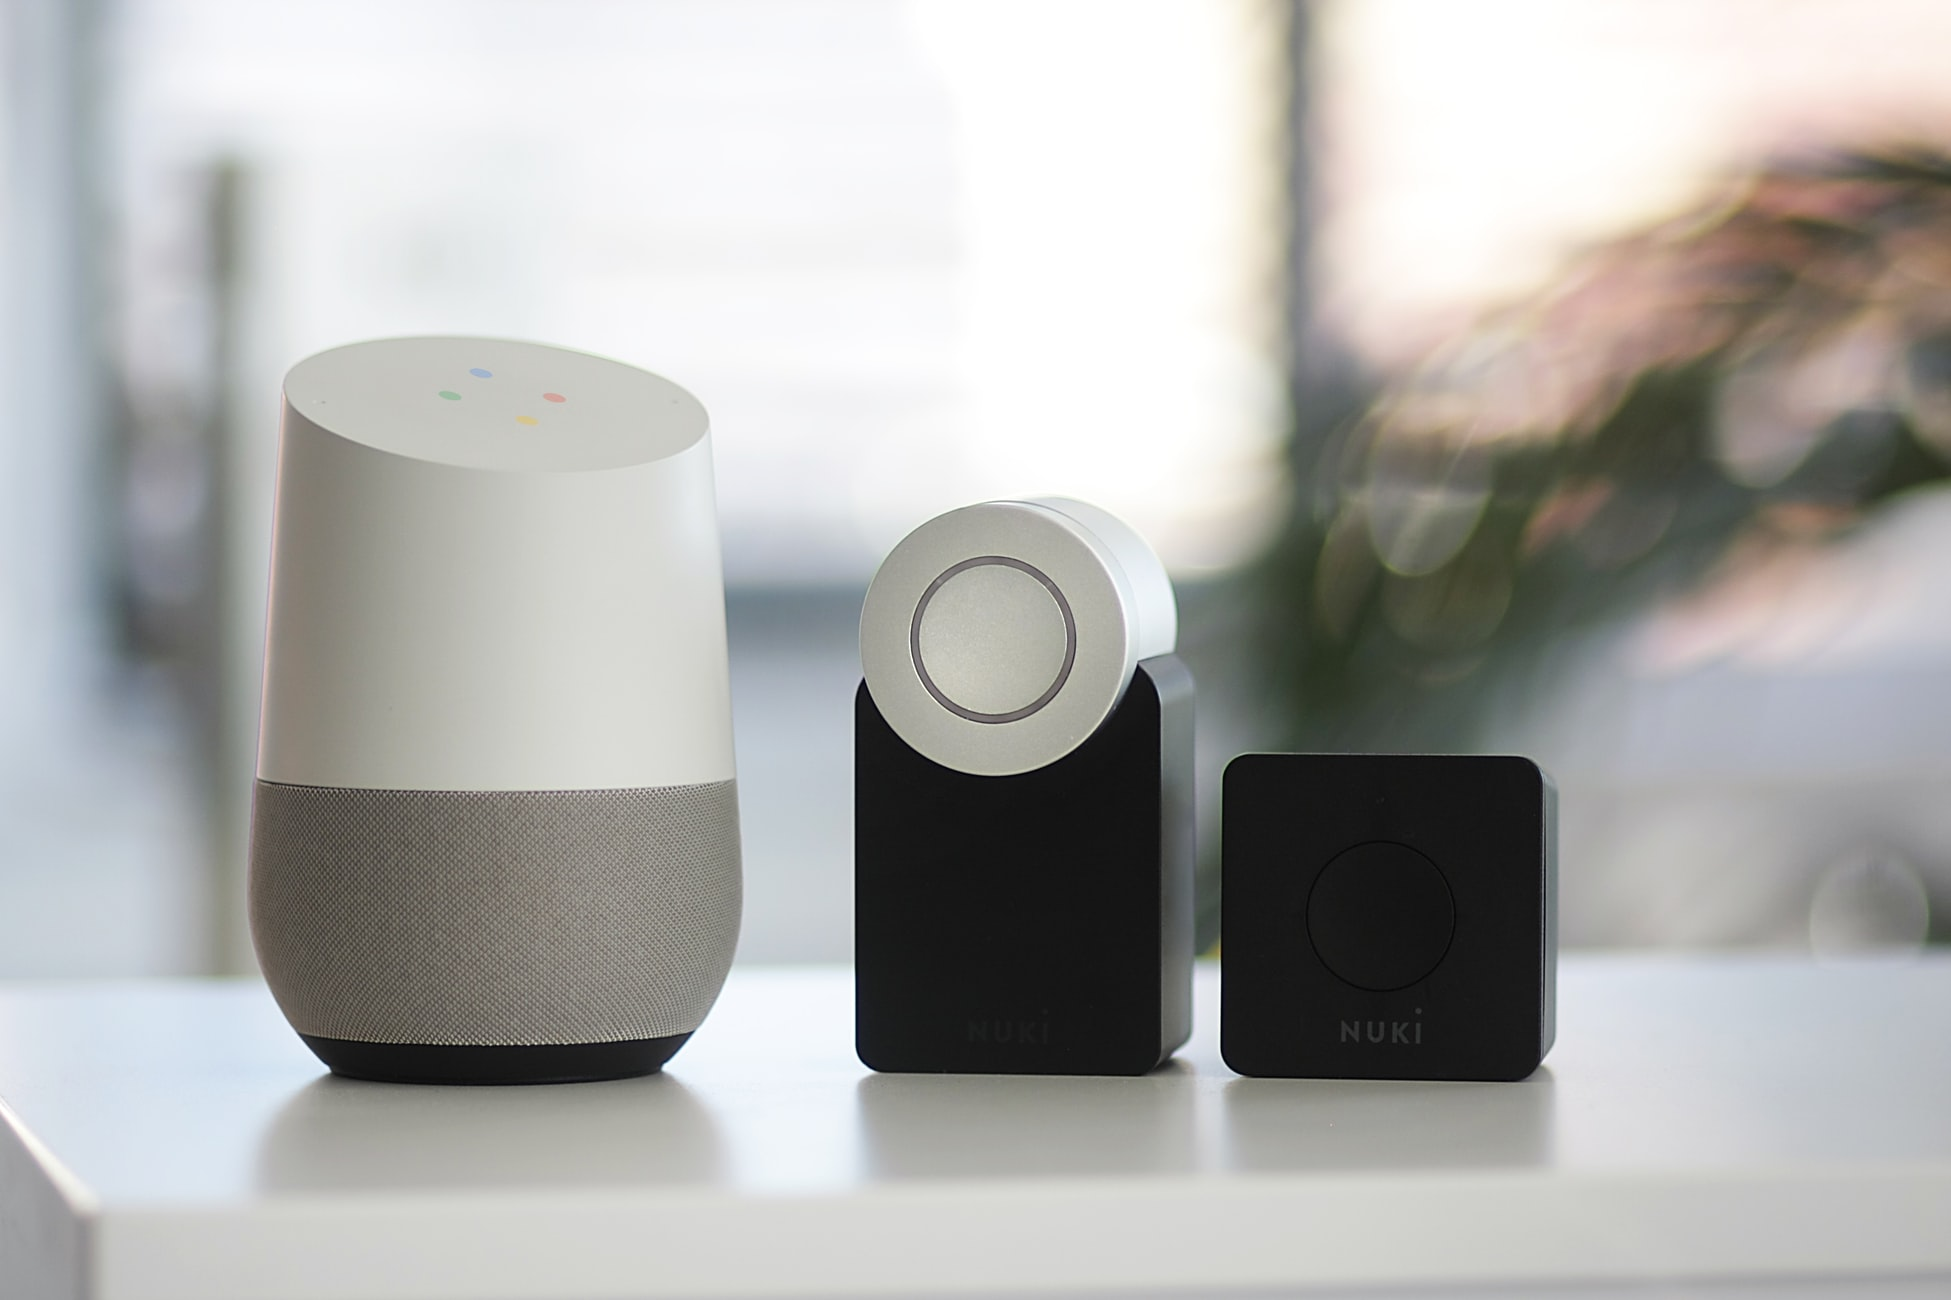 Shows different designs of Google smart speaker in a row